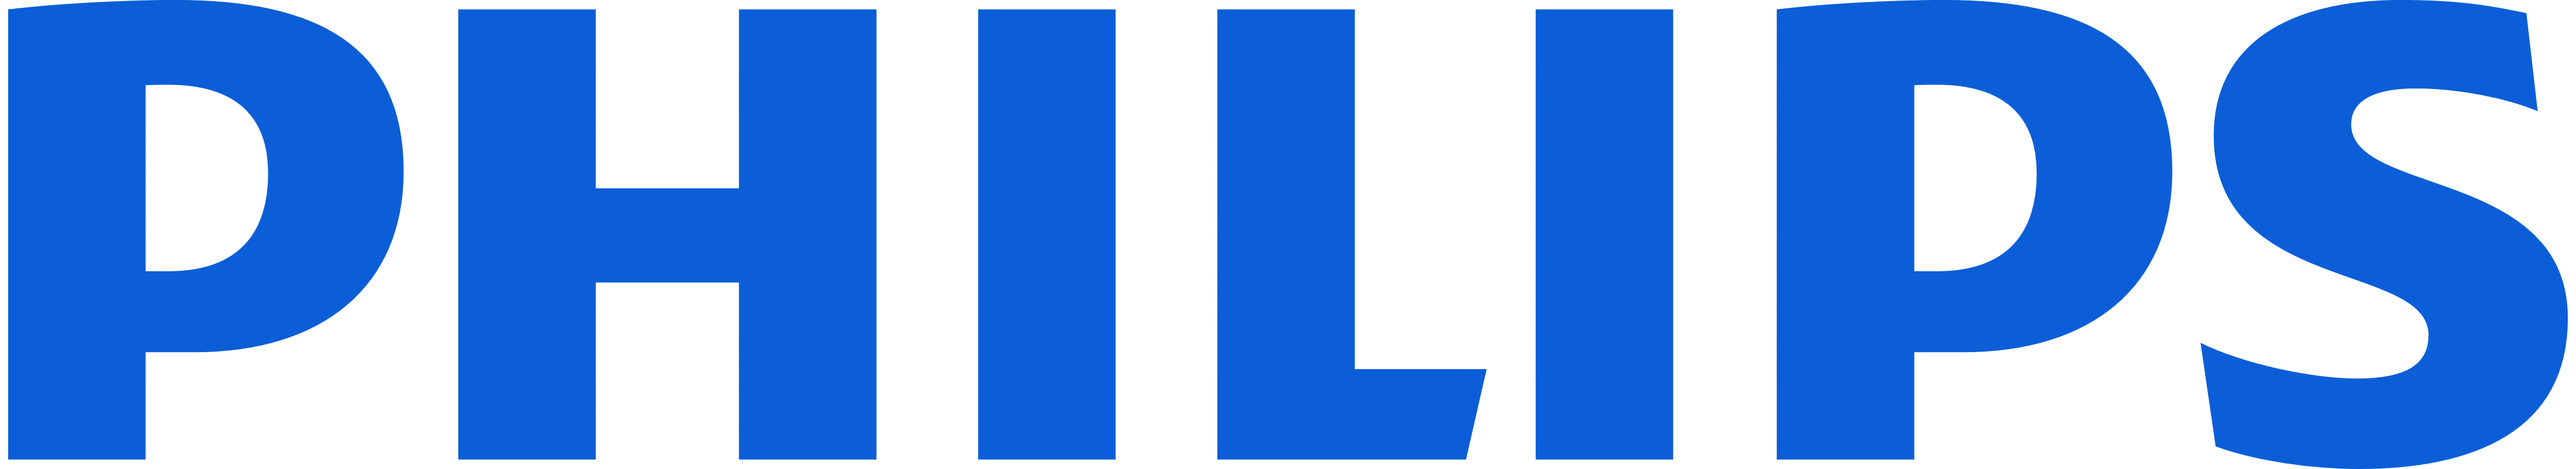 Image result for philips 2016 logo